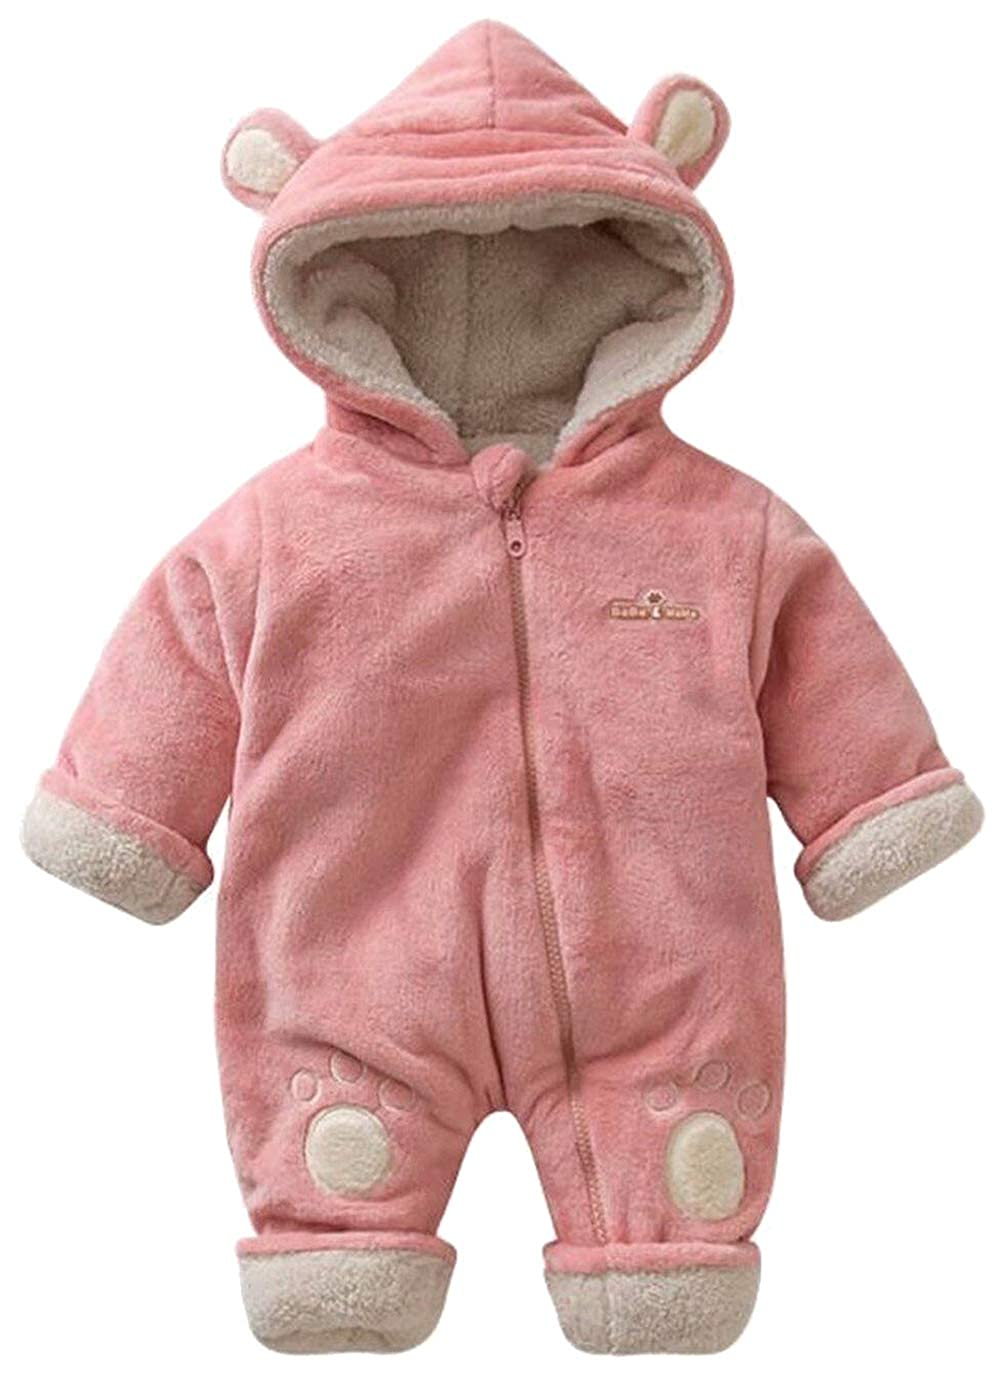 eb2d93fbb81 Amazon.com  EGELEXY Baby Boys Girls Winter Fleece Lined Hooded Outfit  Onesie Cute Bear Style Romper  Clothing